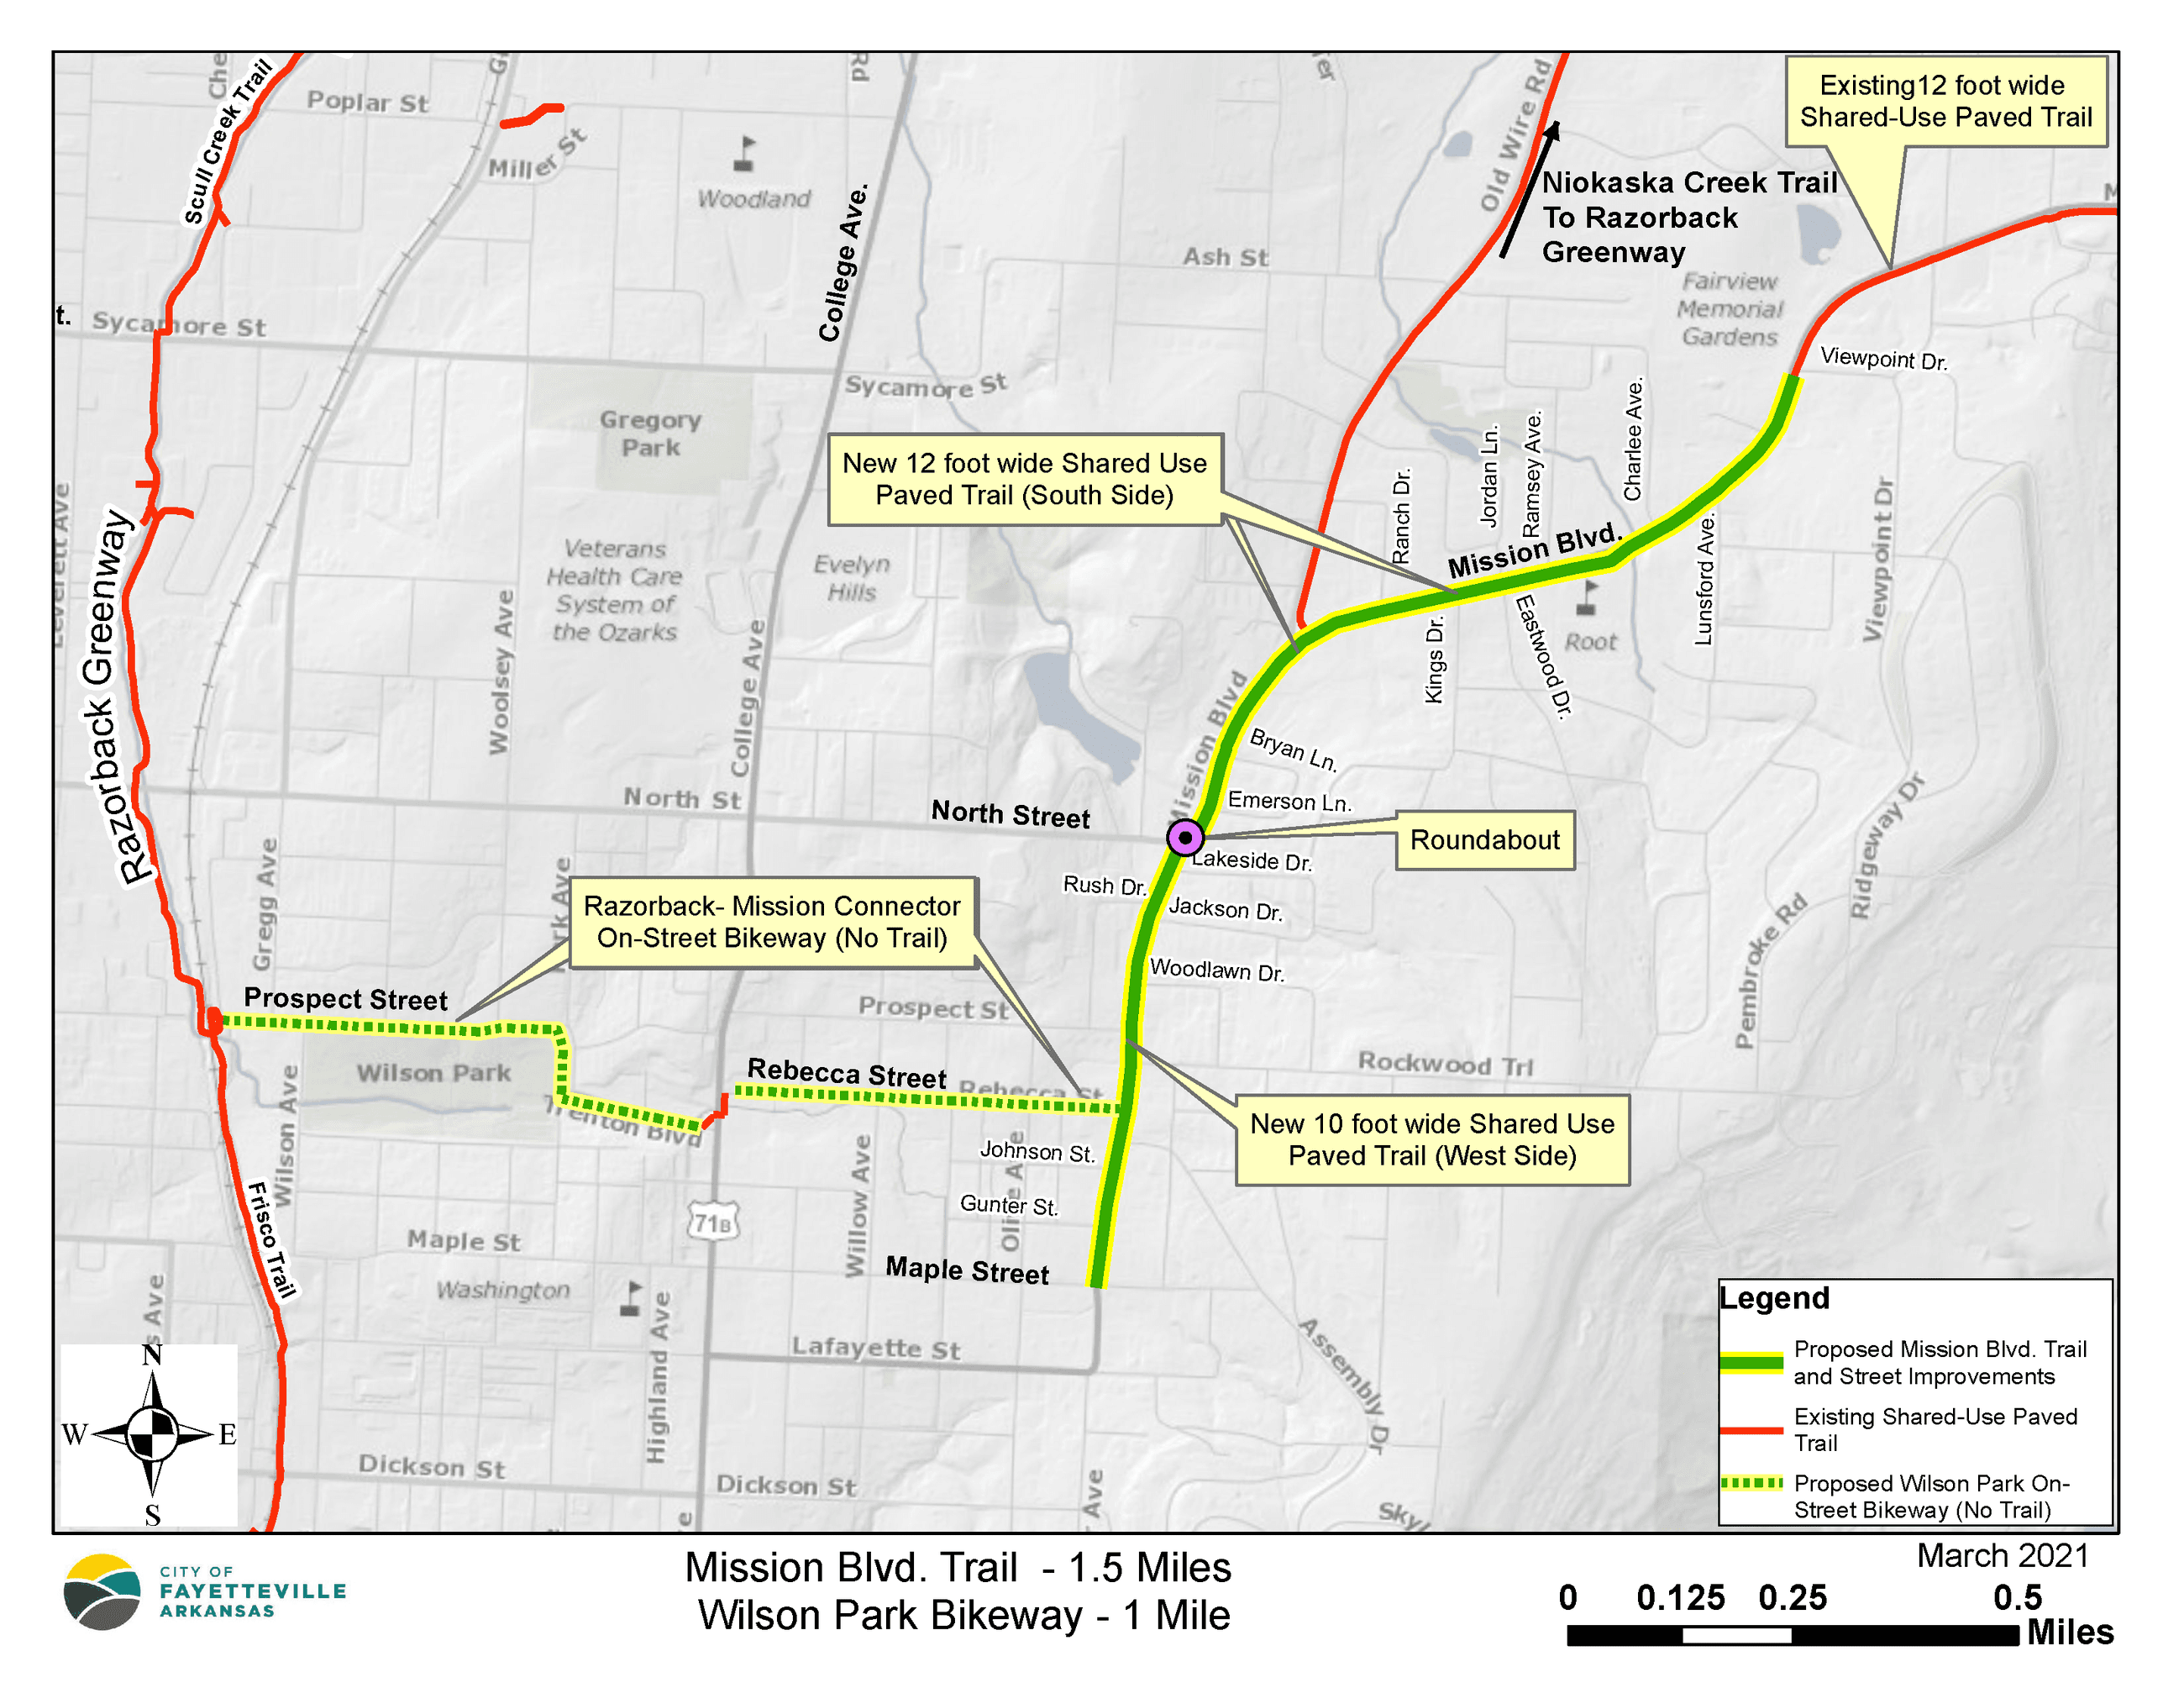 Mission Blvd Trail Map - March 2021